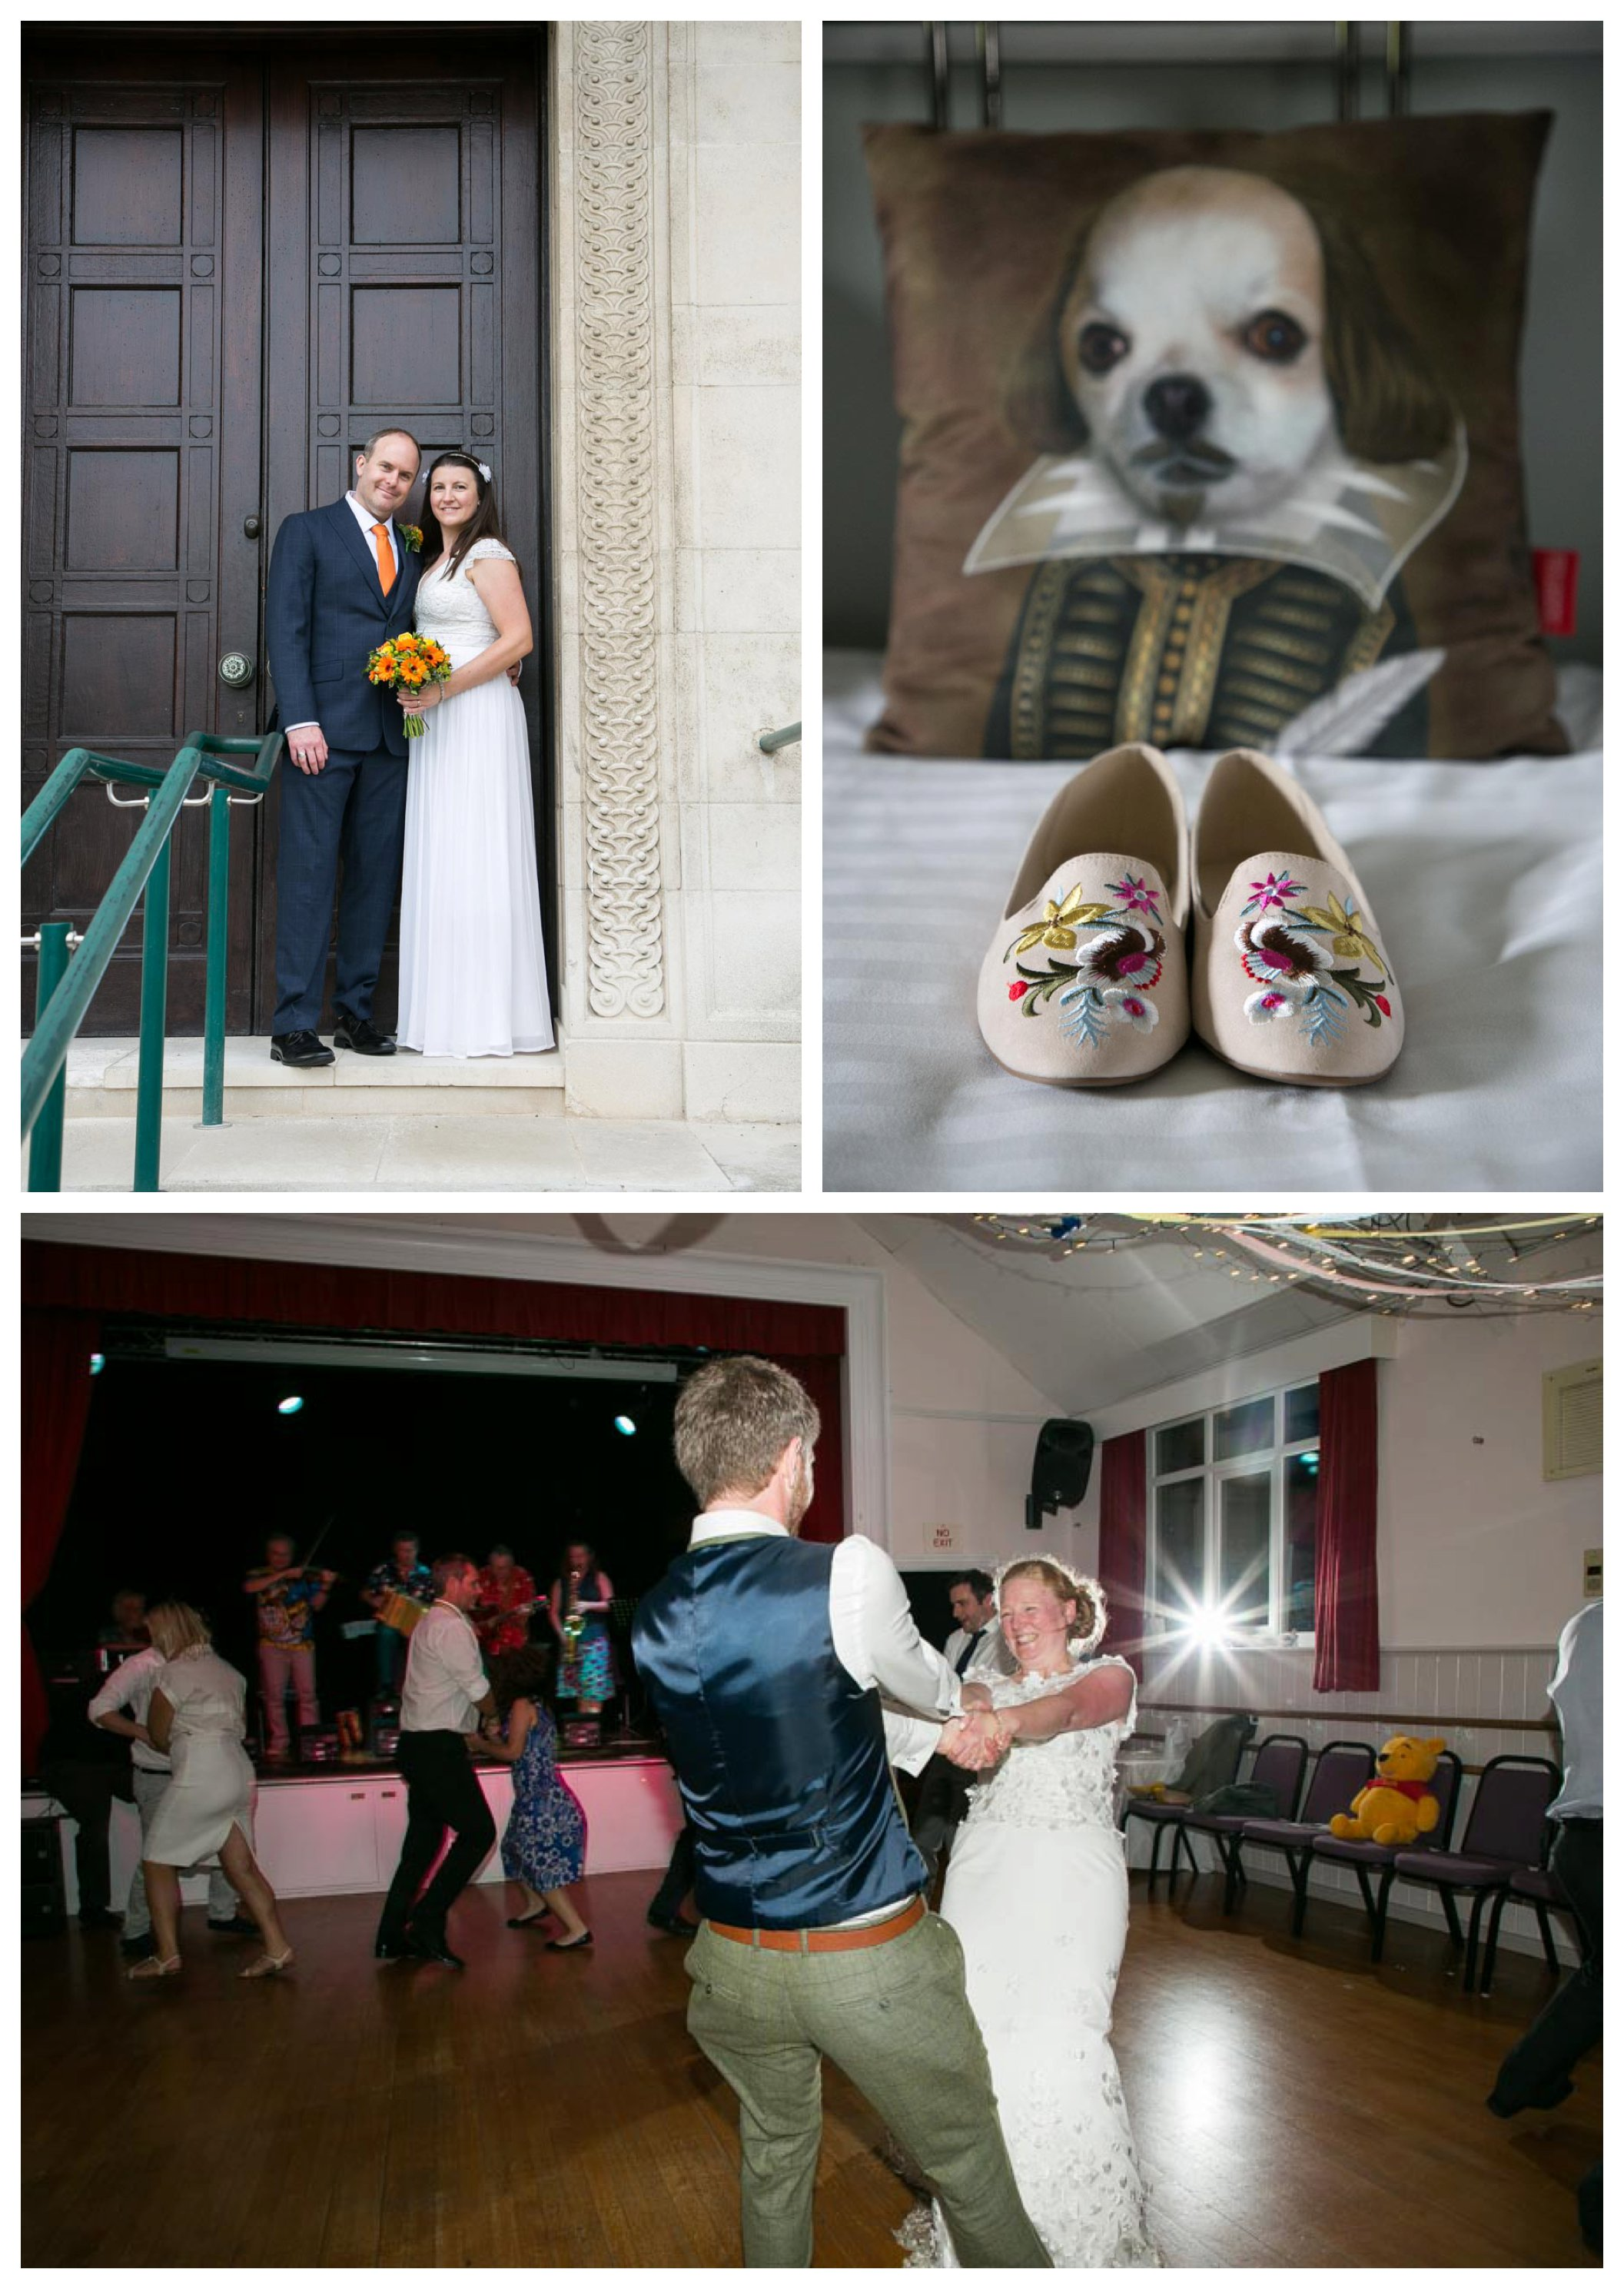 realxed and fun wedding photography, dancing and flat wedding shoes